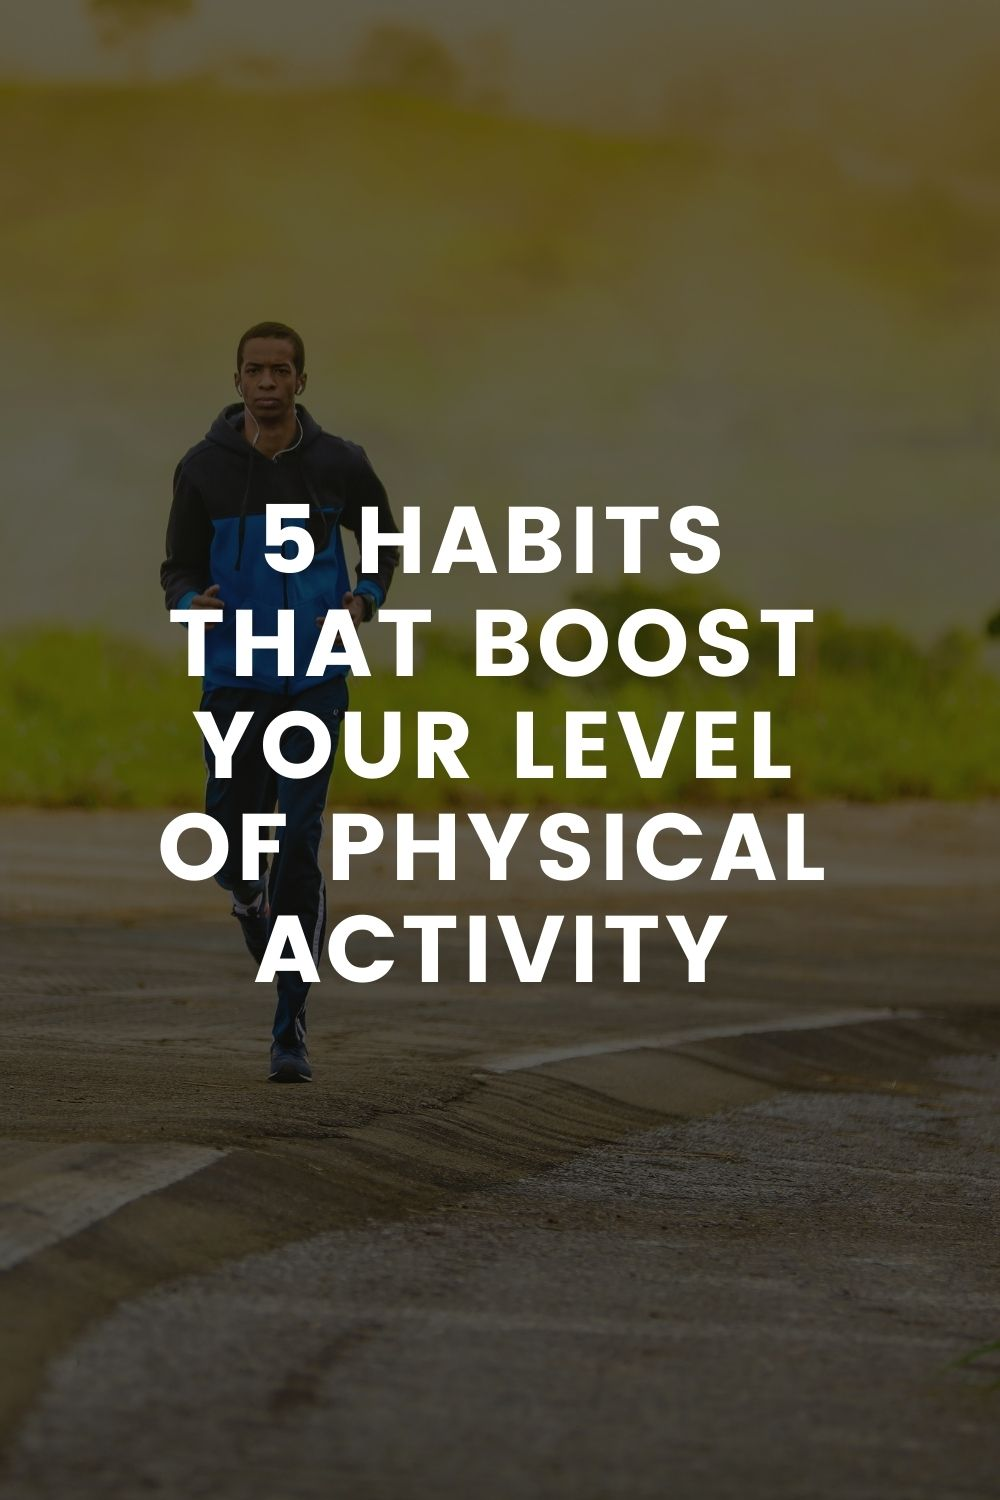 5 Habits That Boost Your Level Of Physical Activity